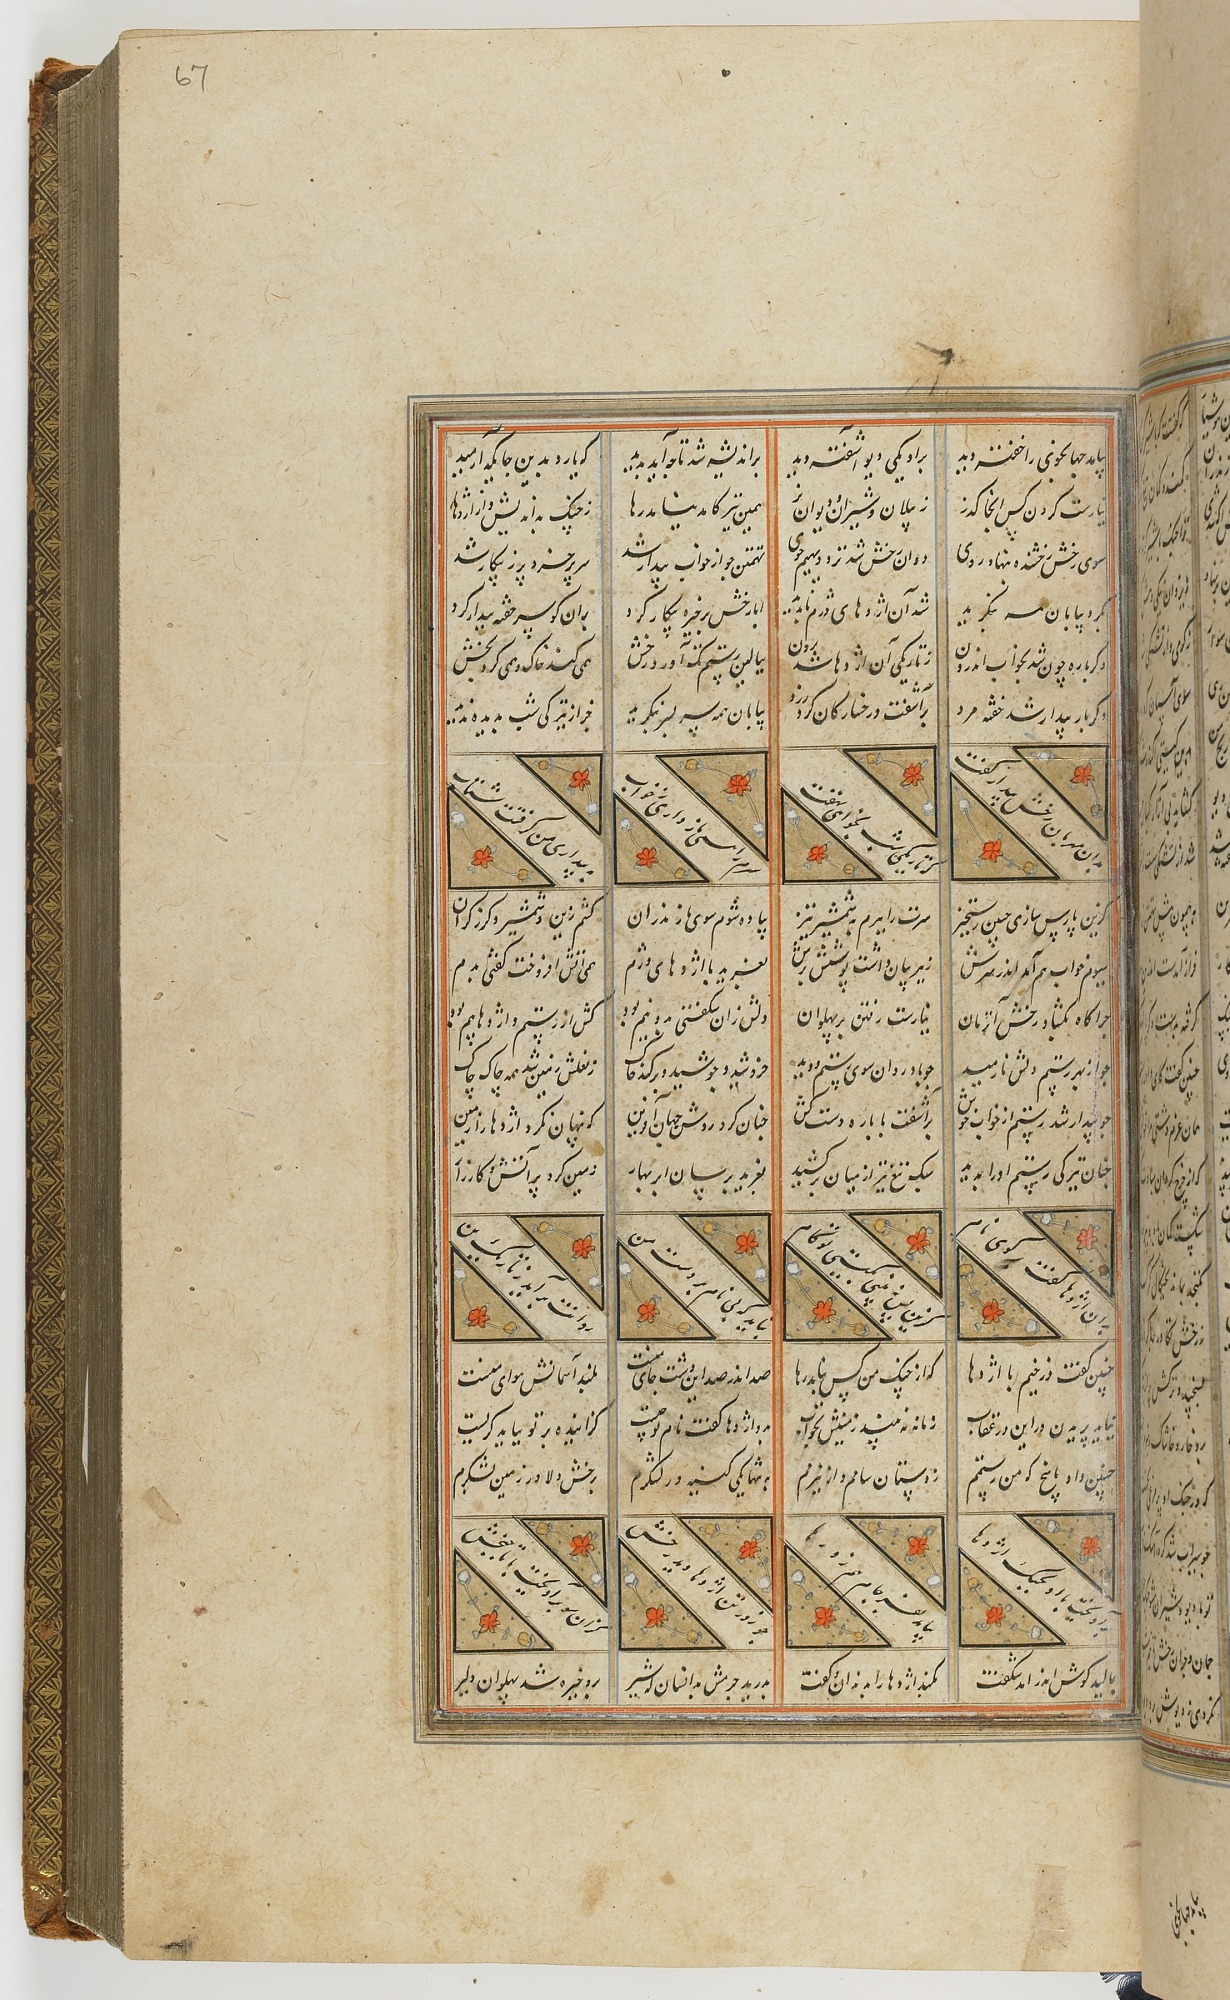 folio 67 recto: The Shahnama (Book of kings) by Firdausi (d. 1020)